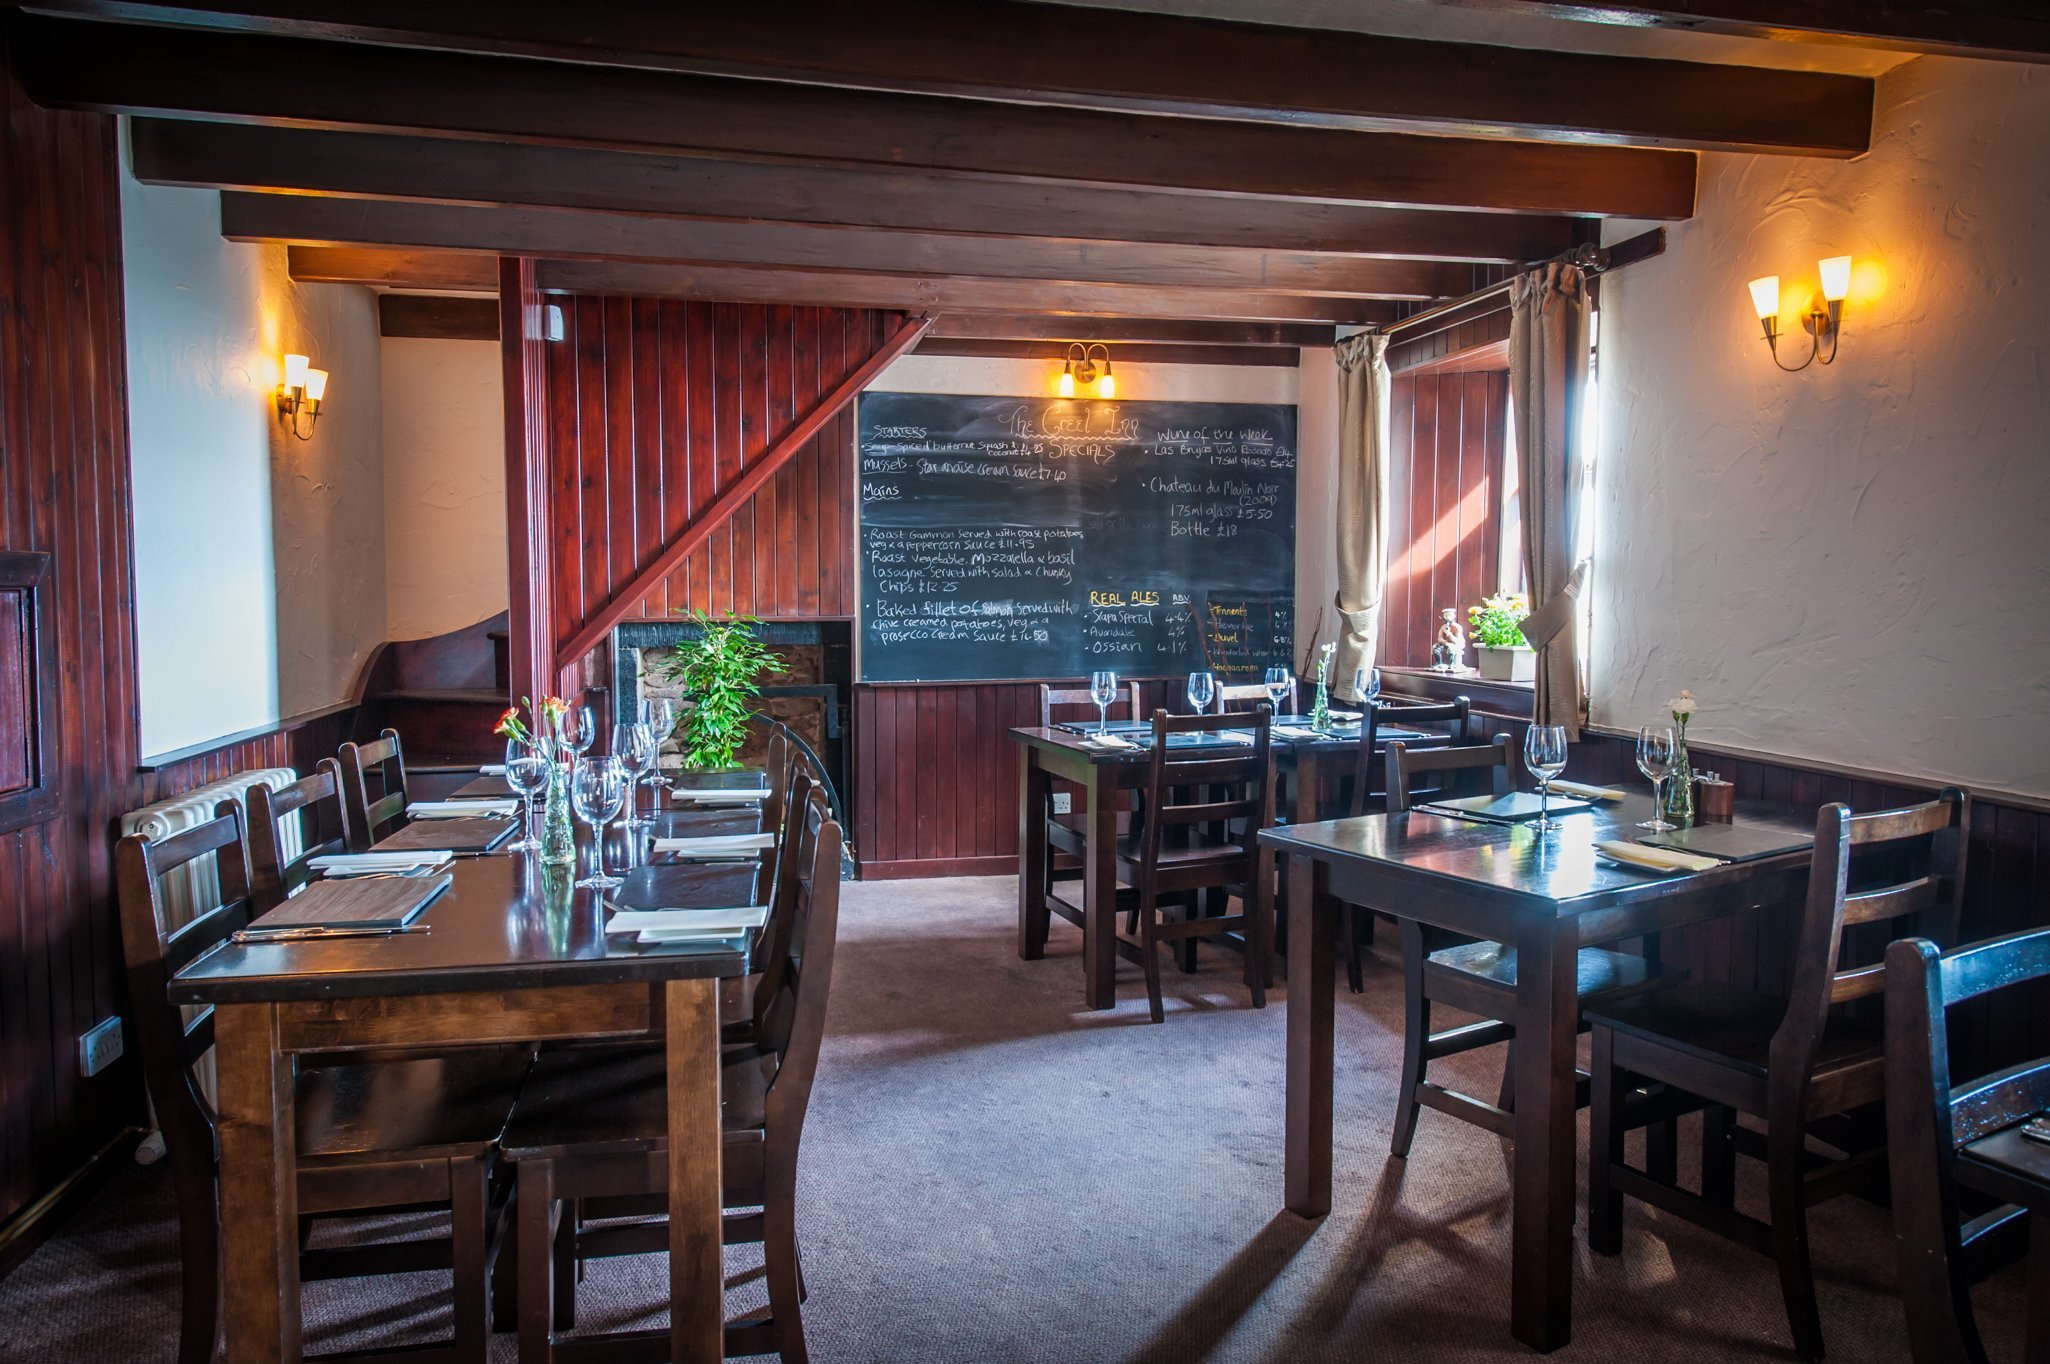 Interior of our fish restaurant in Catterline